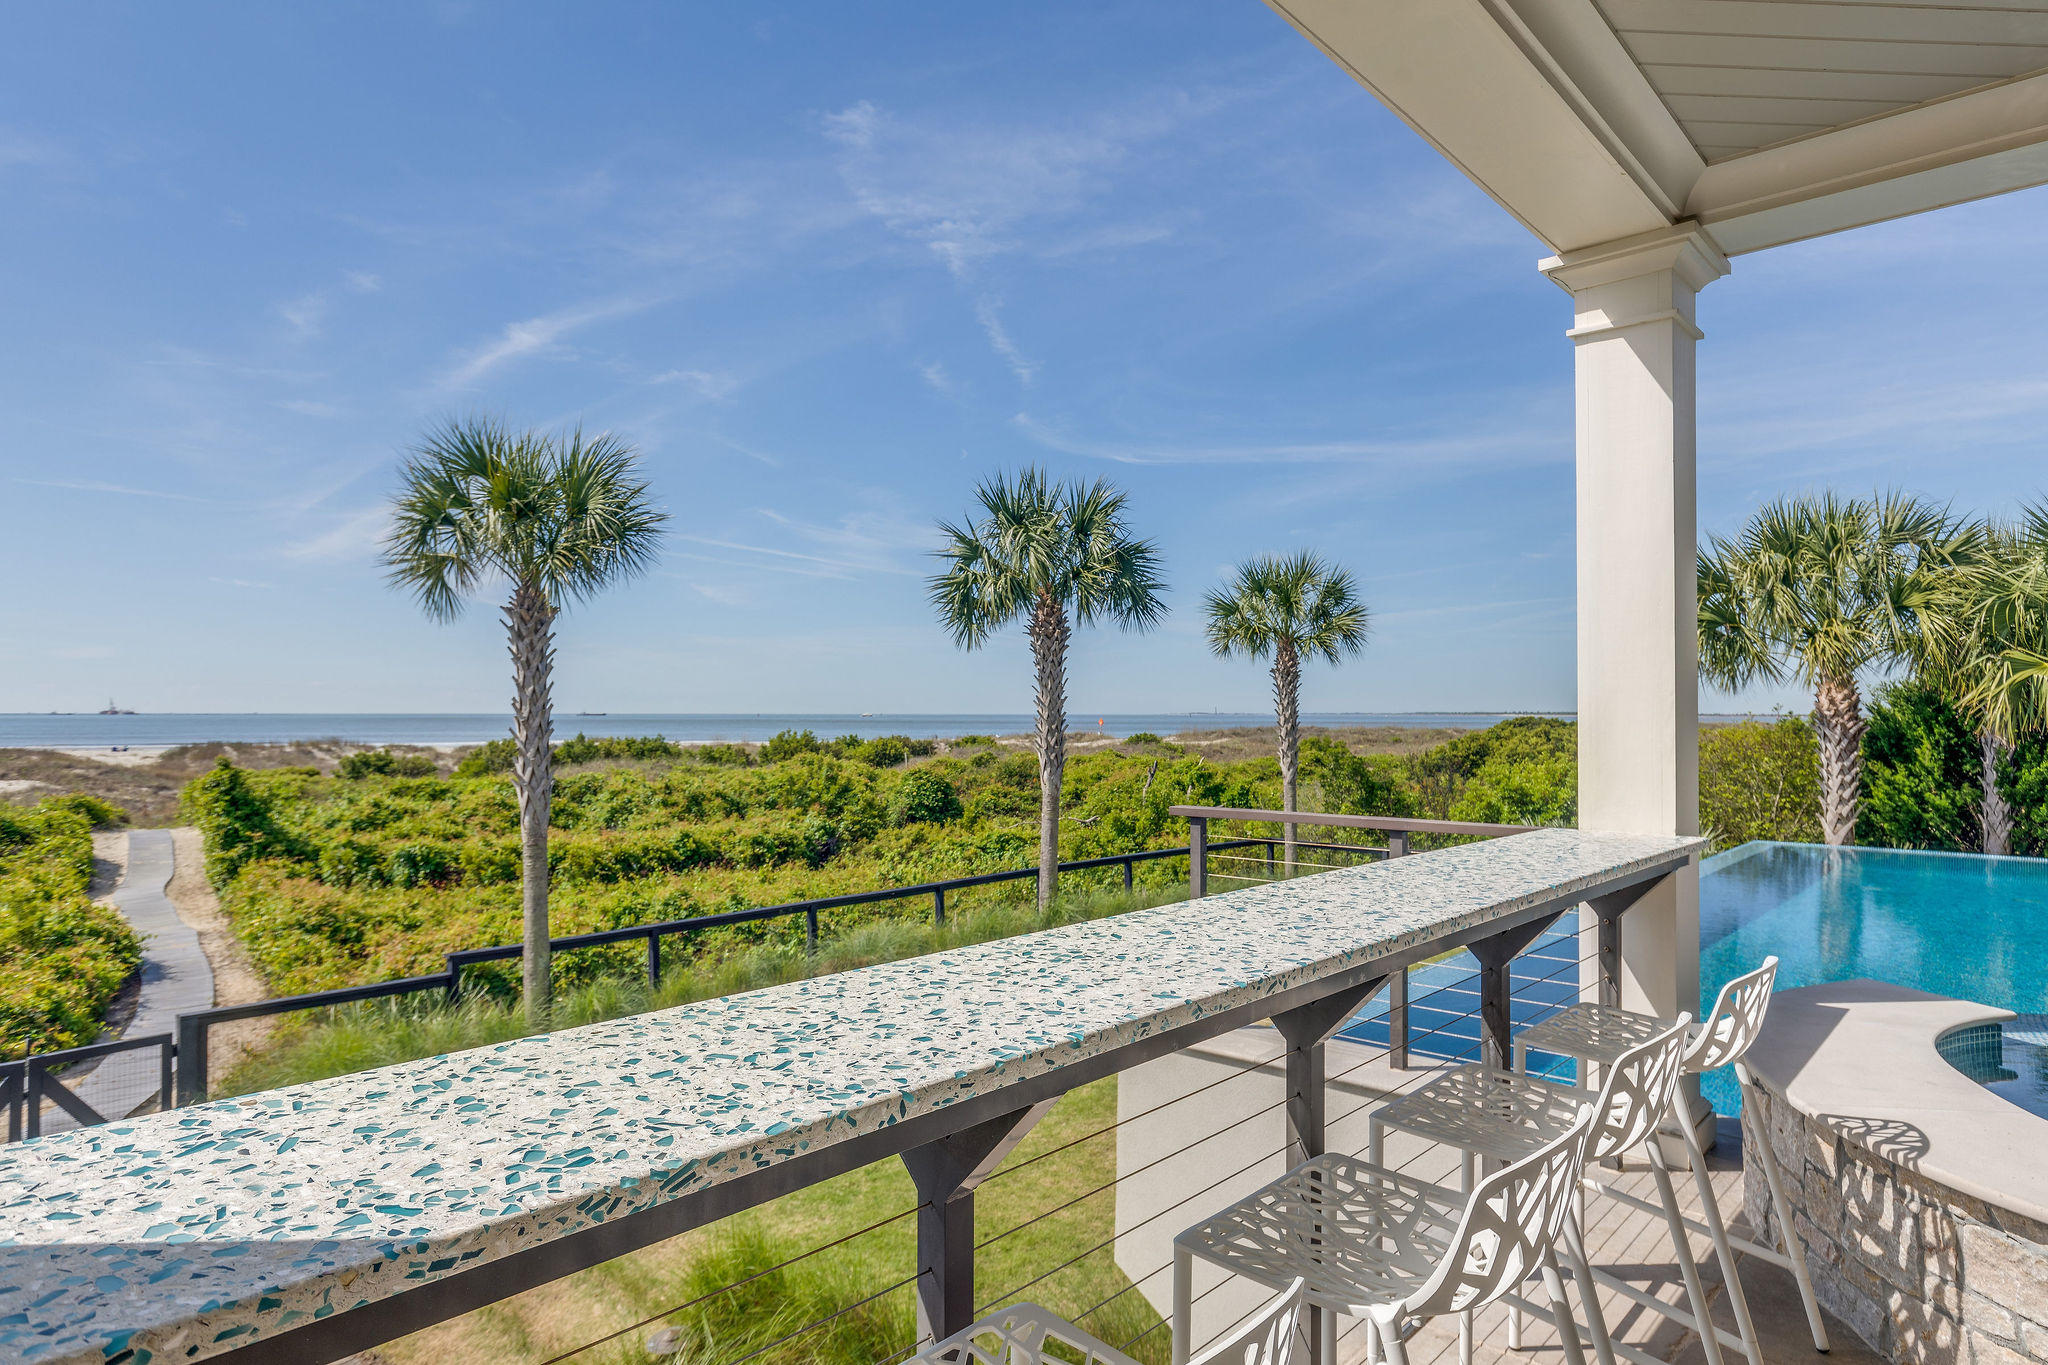 Sullivans Island Homes For Sale - 1901 Thee, Sullivans Island, SC - 55